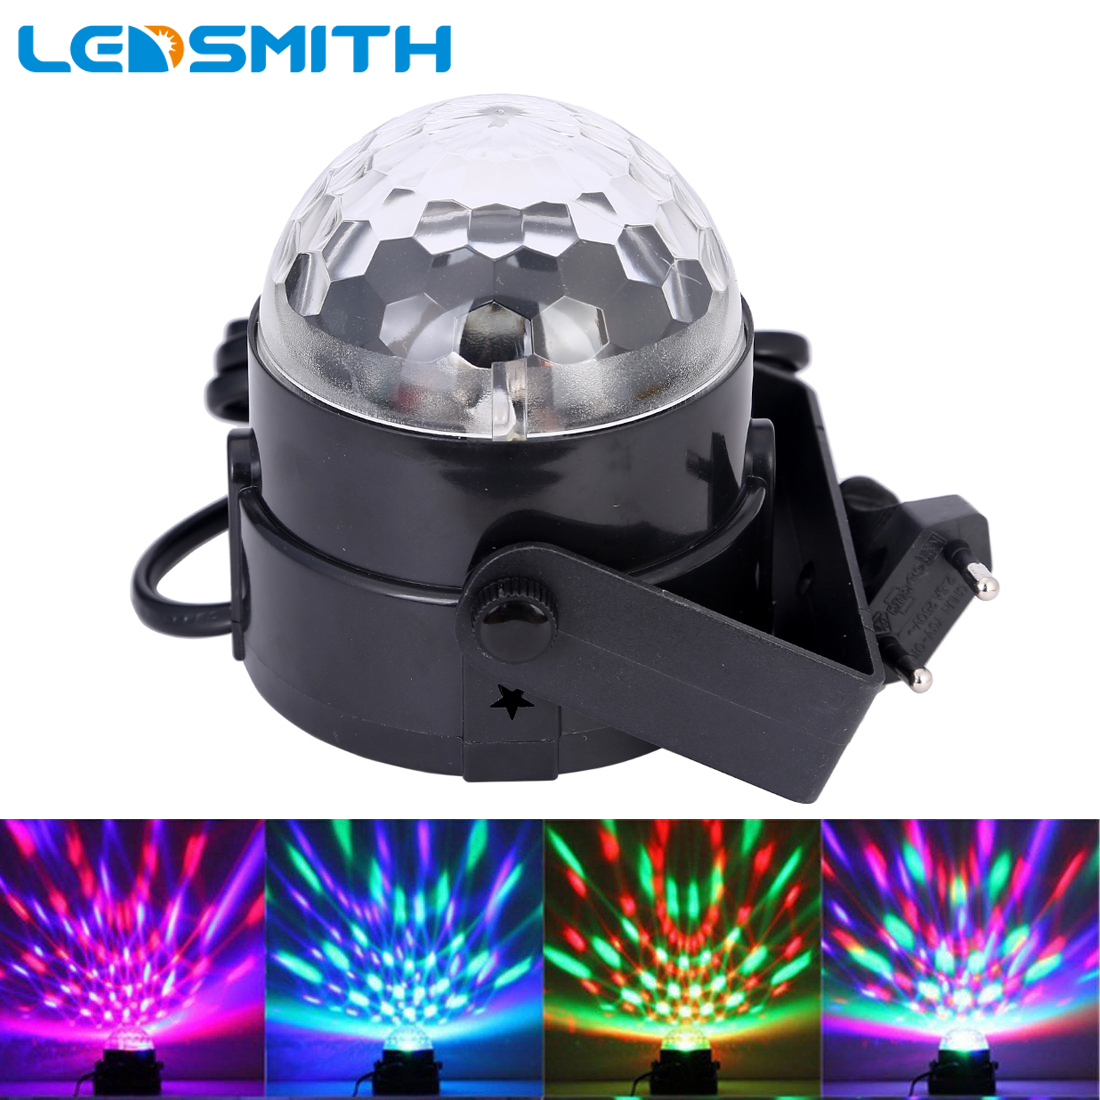 Voice Activated 3W Mini RGB LED Projector Magic Ball DJ Lighting Disco Dance Light Bar Party KTV Stage Lights Effect Show 6w e27 led stage light rgb lamp with voice activated mp3 projector crystal magic ball rotating disco dj party stage lighting